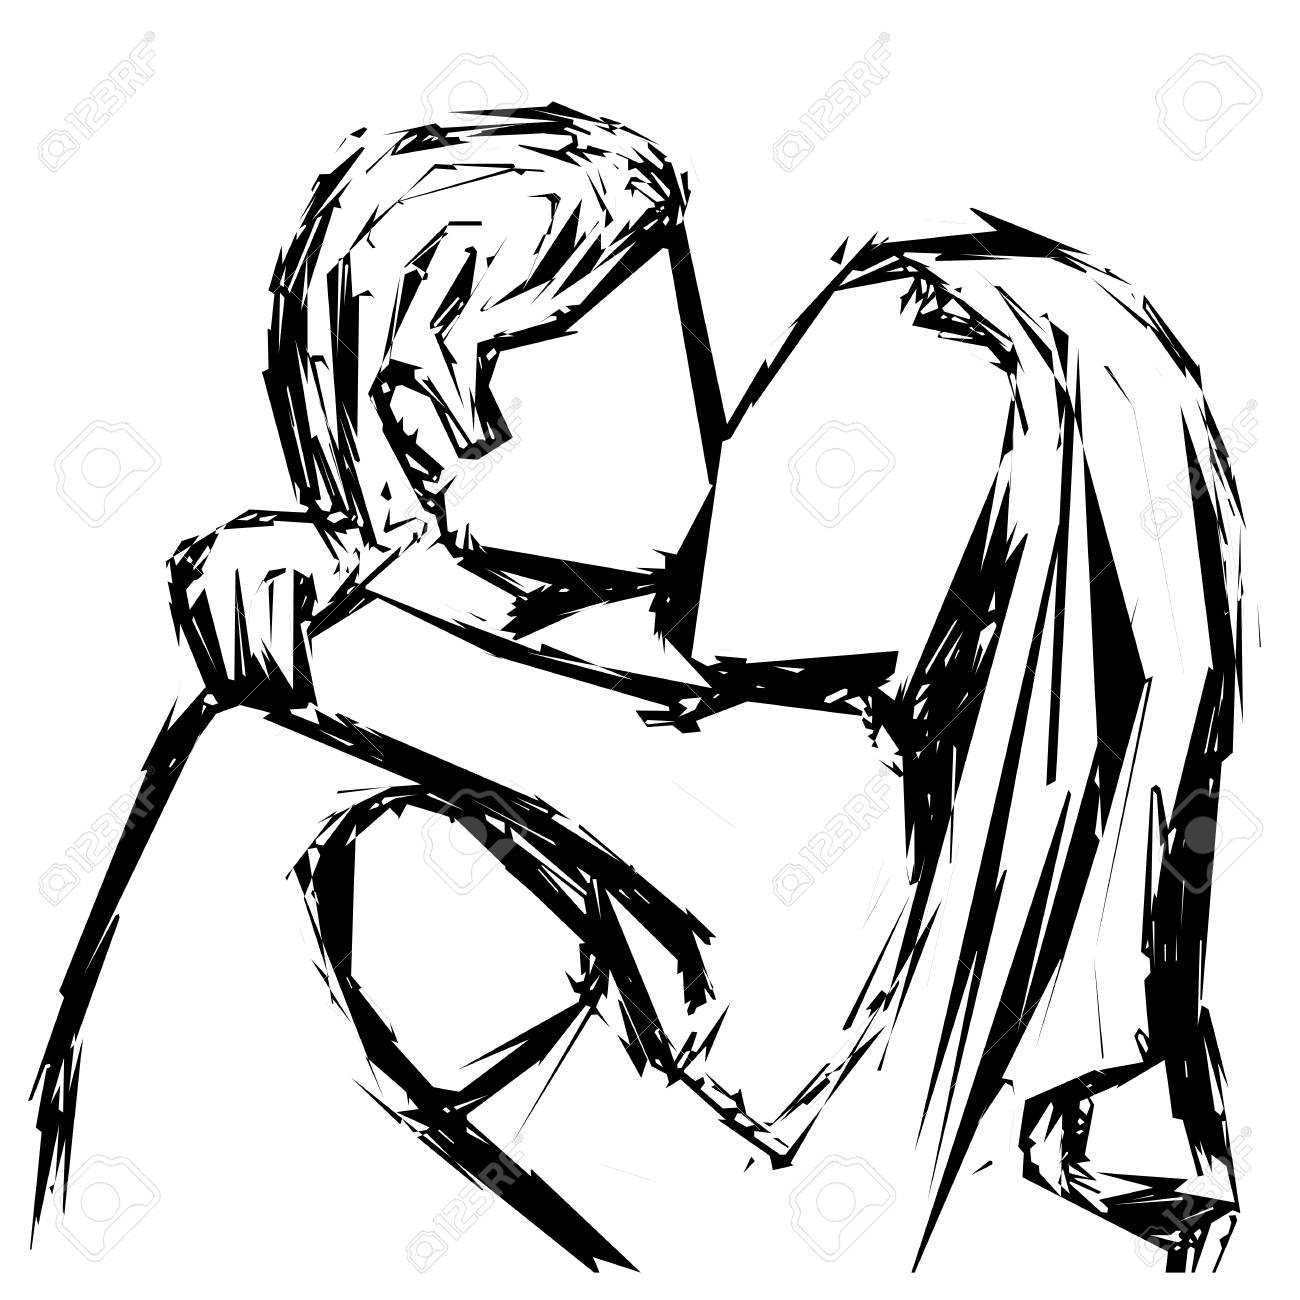 Sketch of a kissing couple in love with a gel pen vector illustration